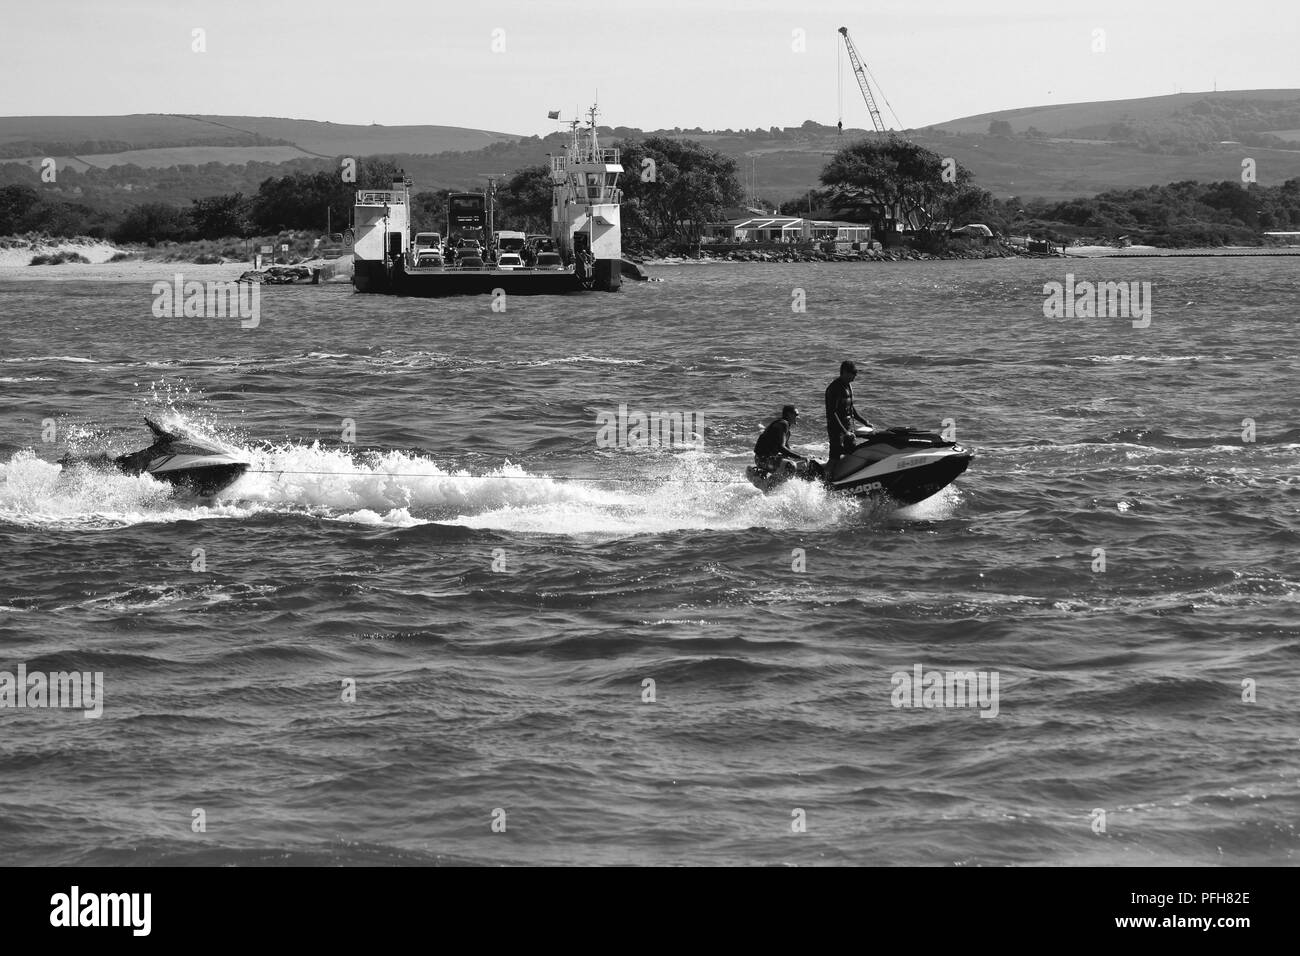 Sandbanks, Dorset, England - June 02 2018: Black and white shot of a jet ski crossing Poole Harbour in Dorset, with the chain link ferry in the backgr - Stock Image